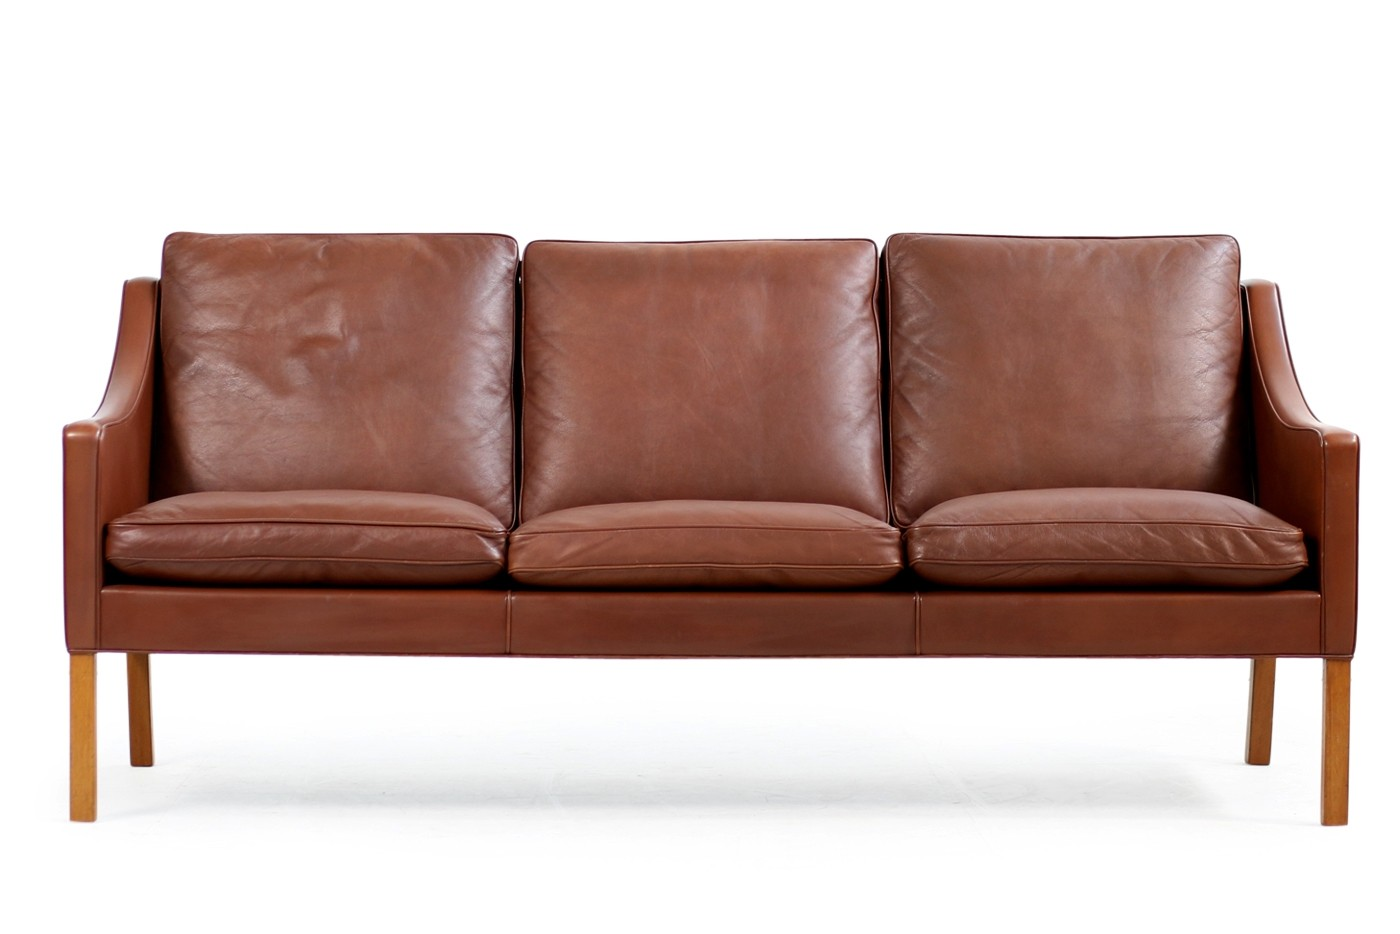 mogensen sofa 2209 how to get rid of pen stain on leather 1960s borge mod by fredericia